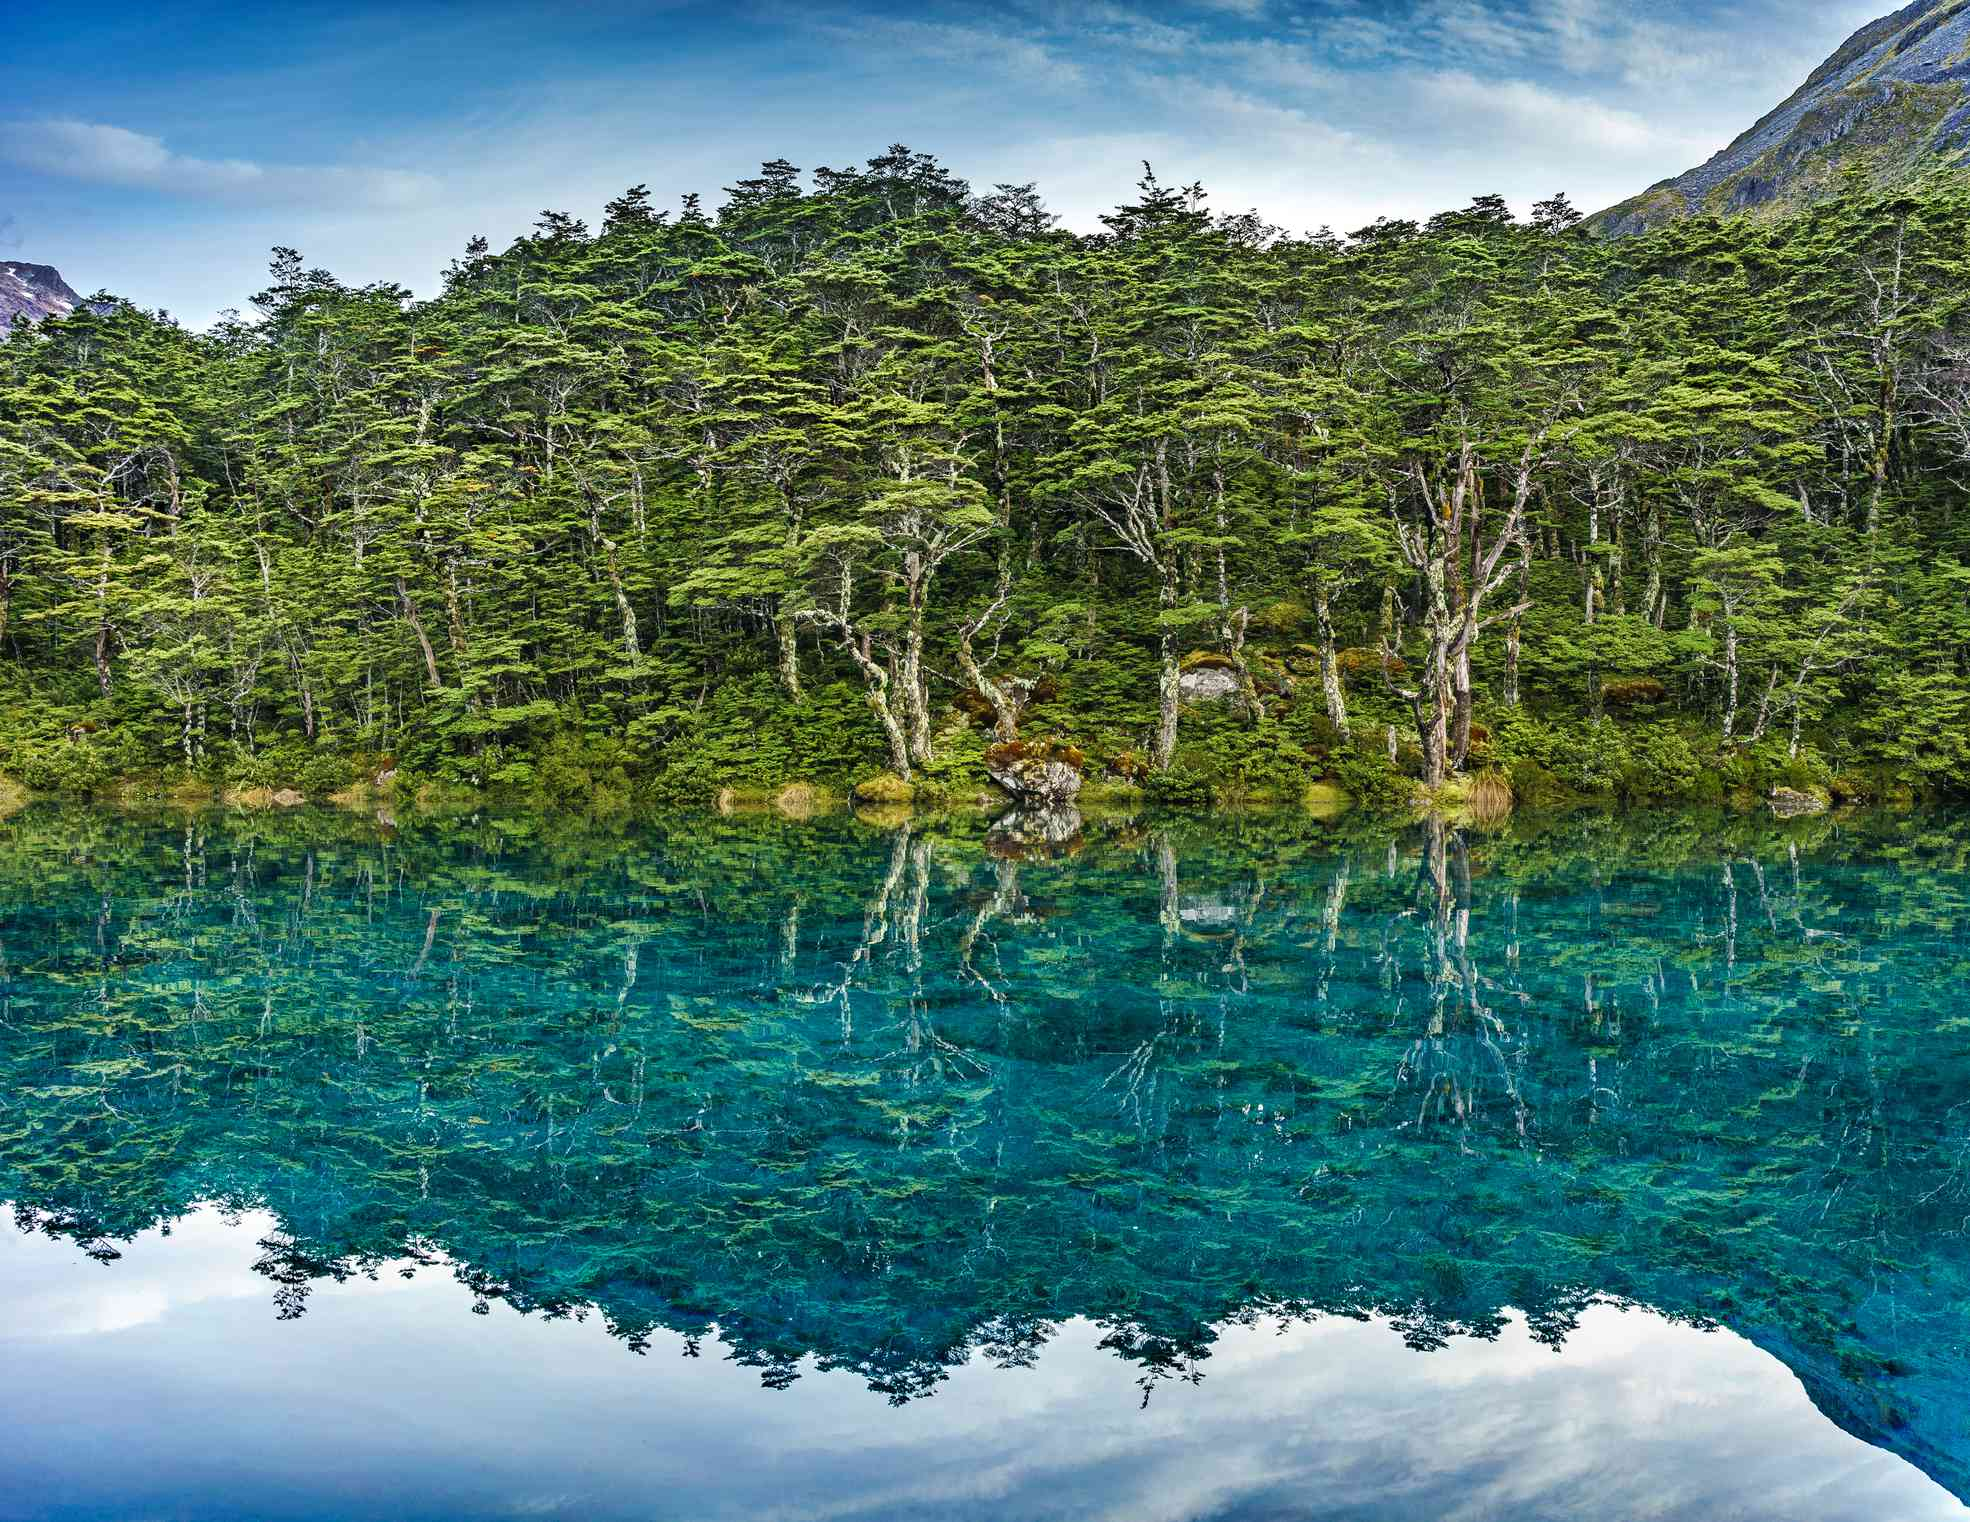 green trees reflected on the surface of a blue lake